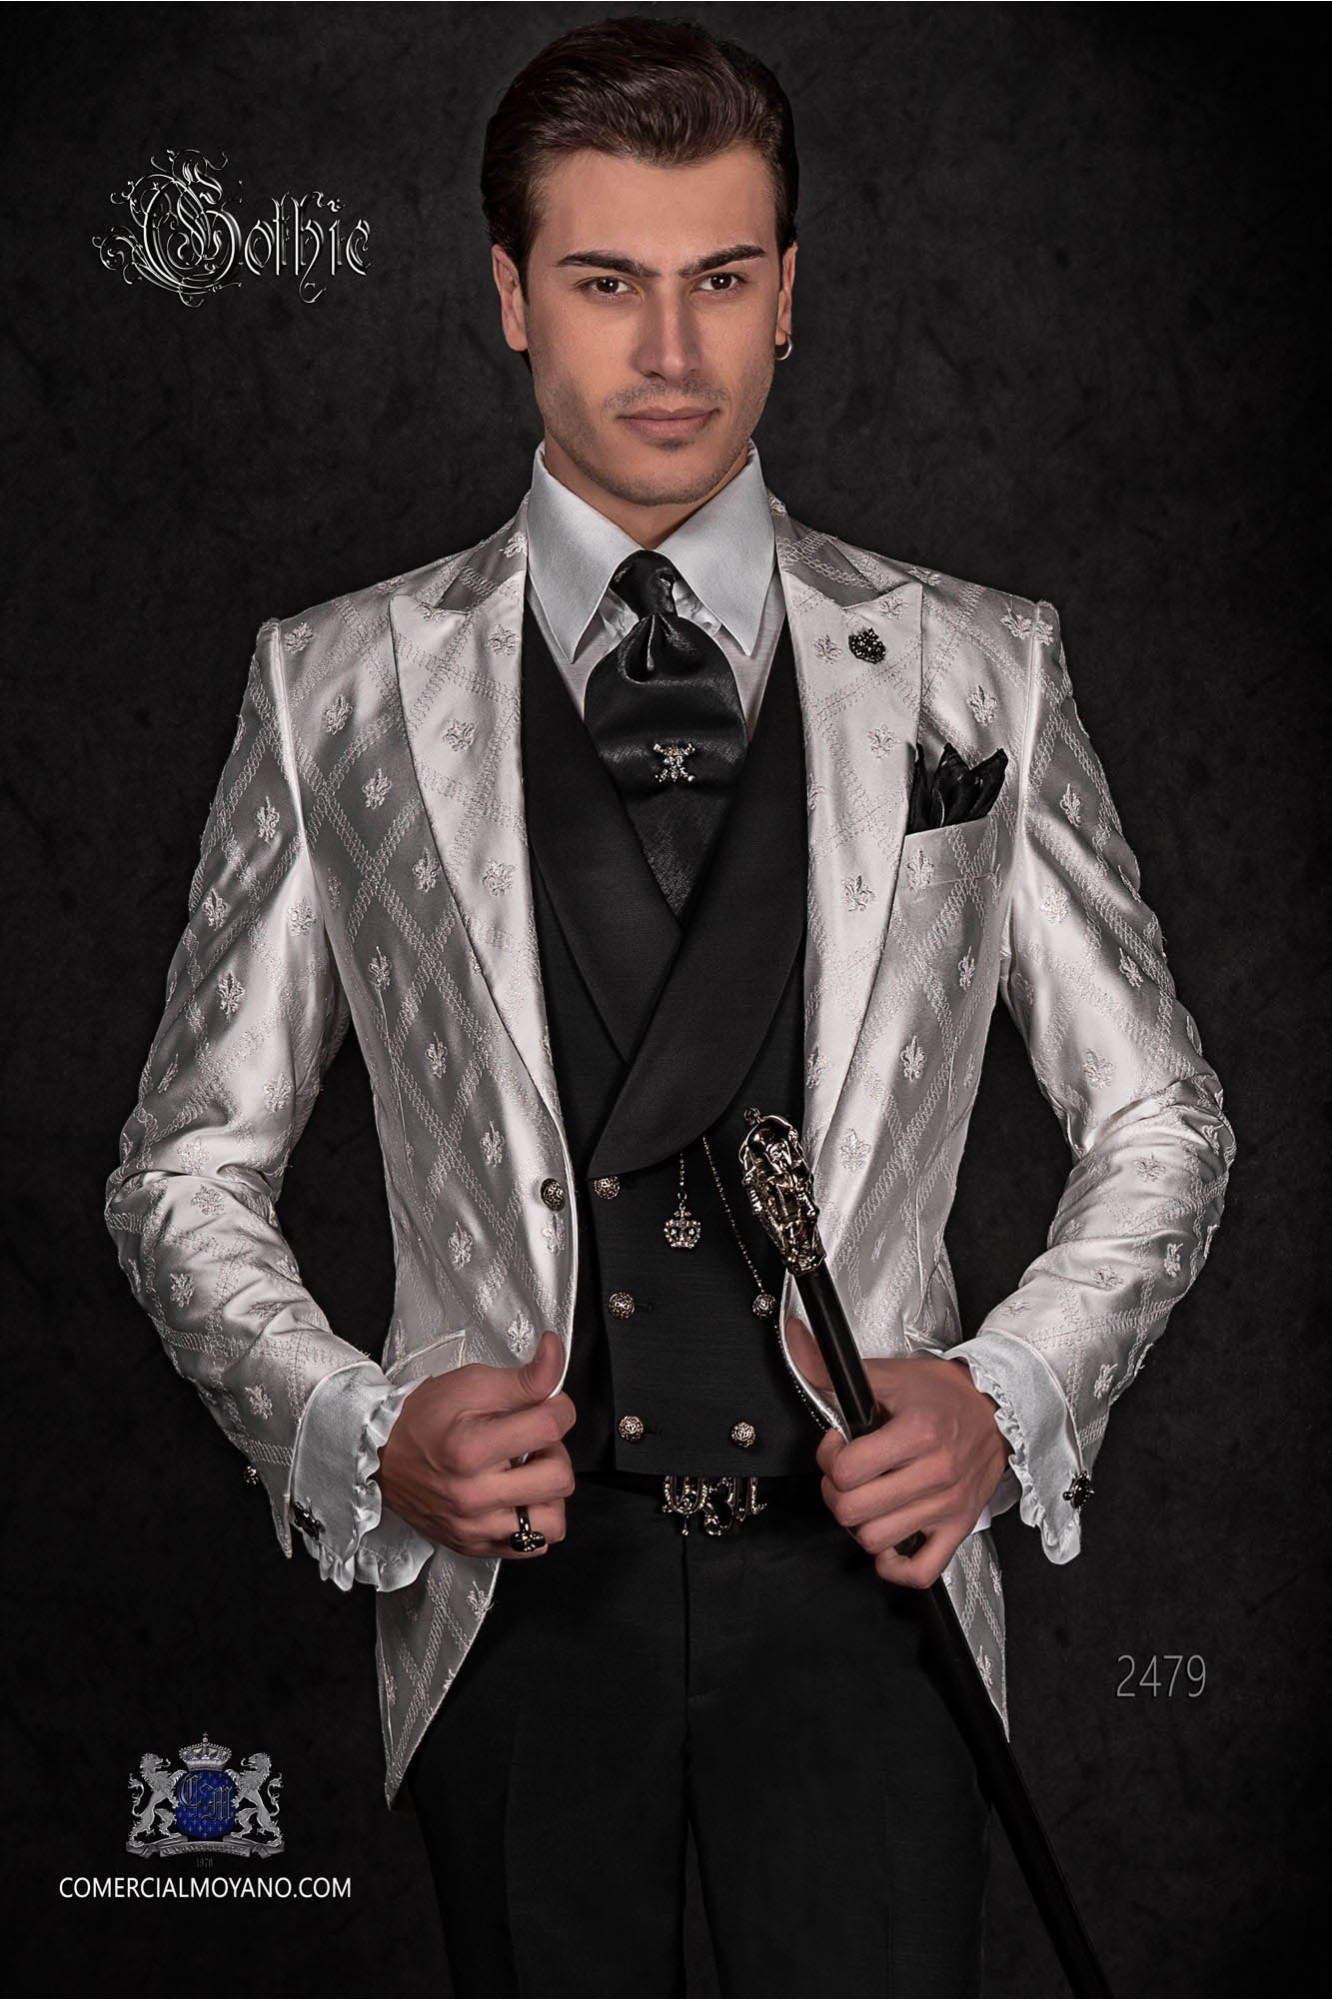 Gothic frock coat made of white satin with fleur de lis embroidery